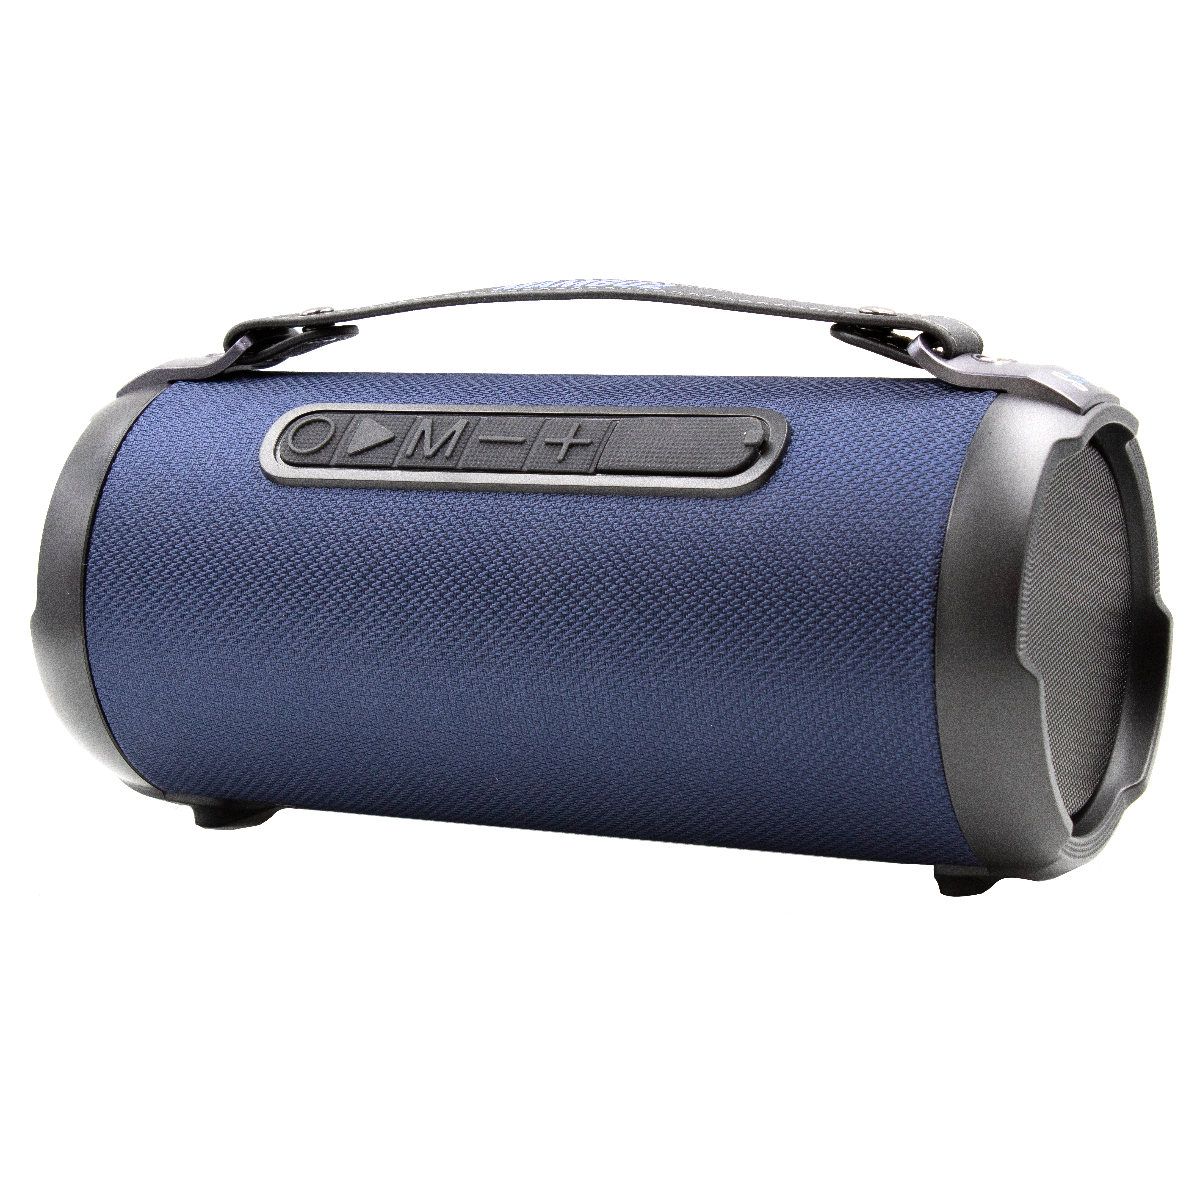 Mambo 2 portable speaker with big sound